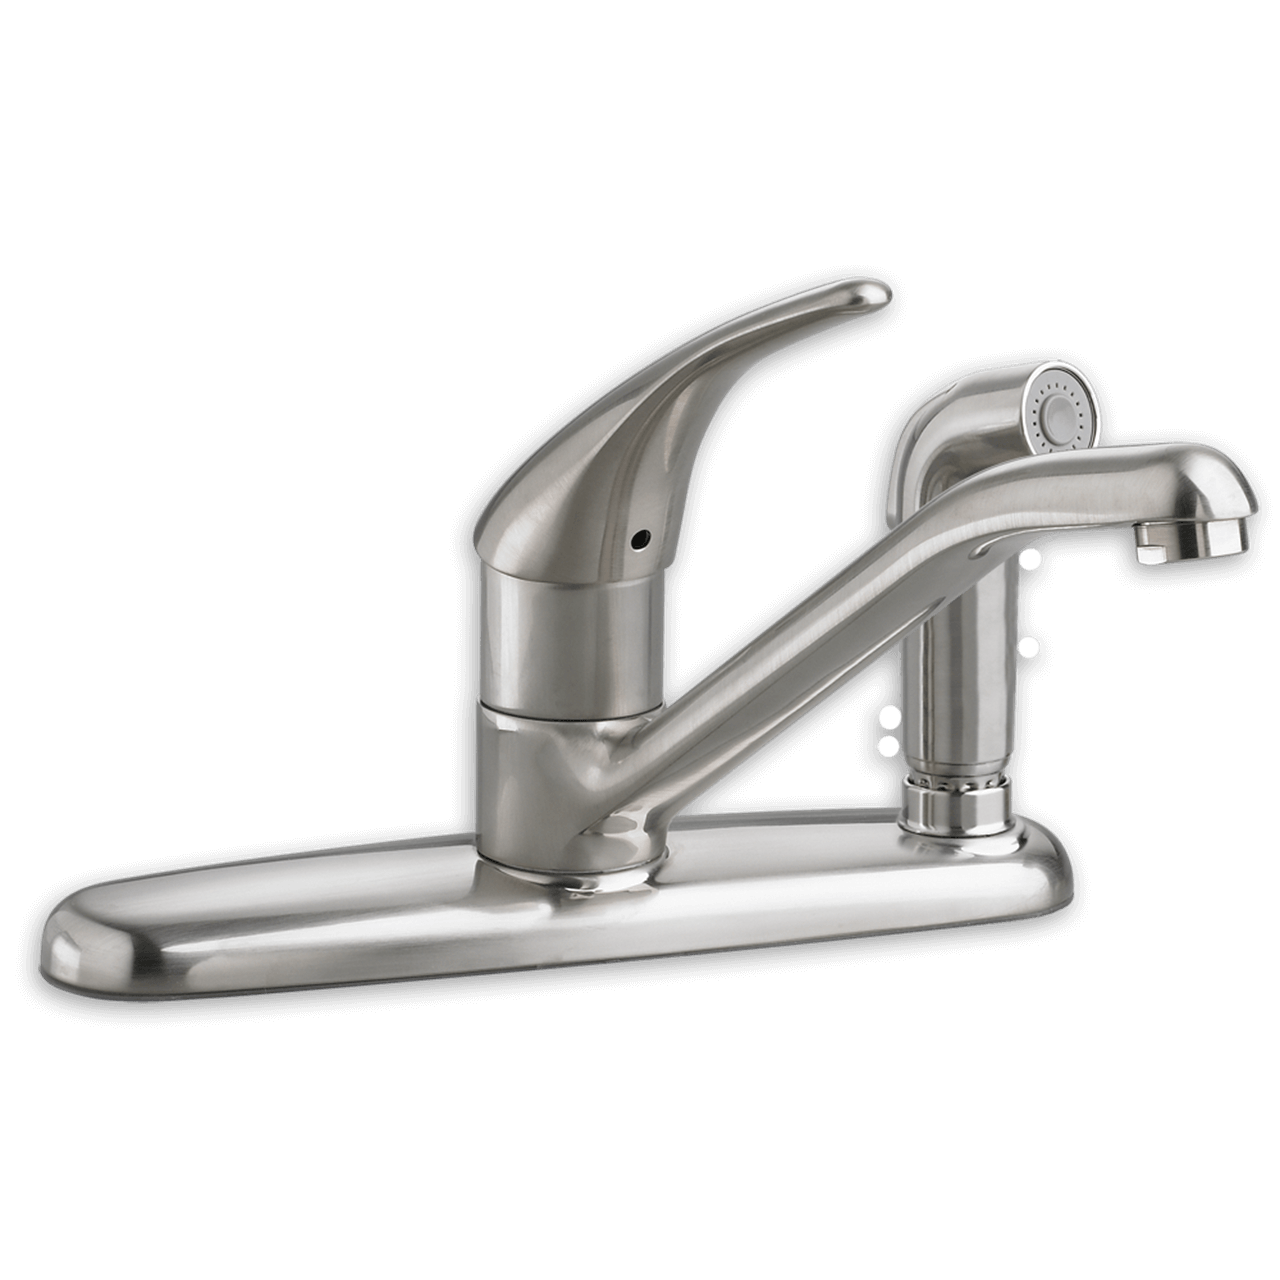 kitchen faucet with side spray cheap ways to redo cabinets american standard colony soft 1 handle